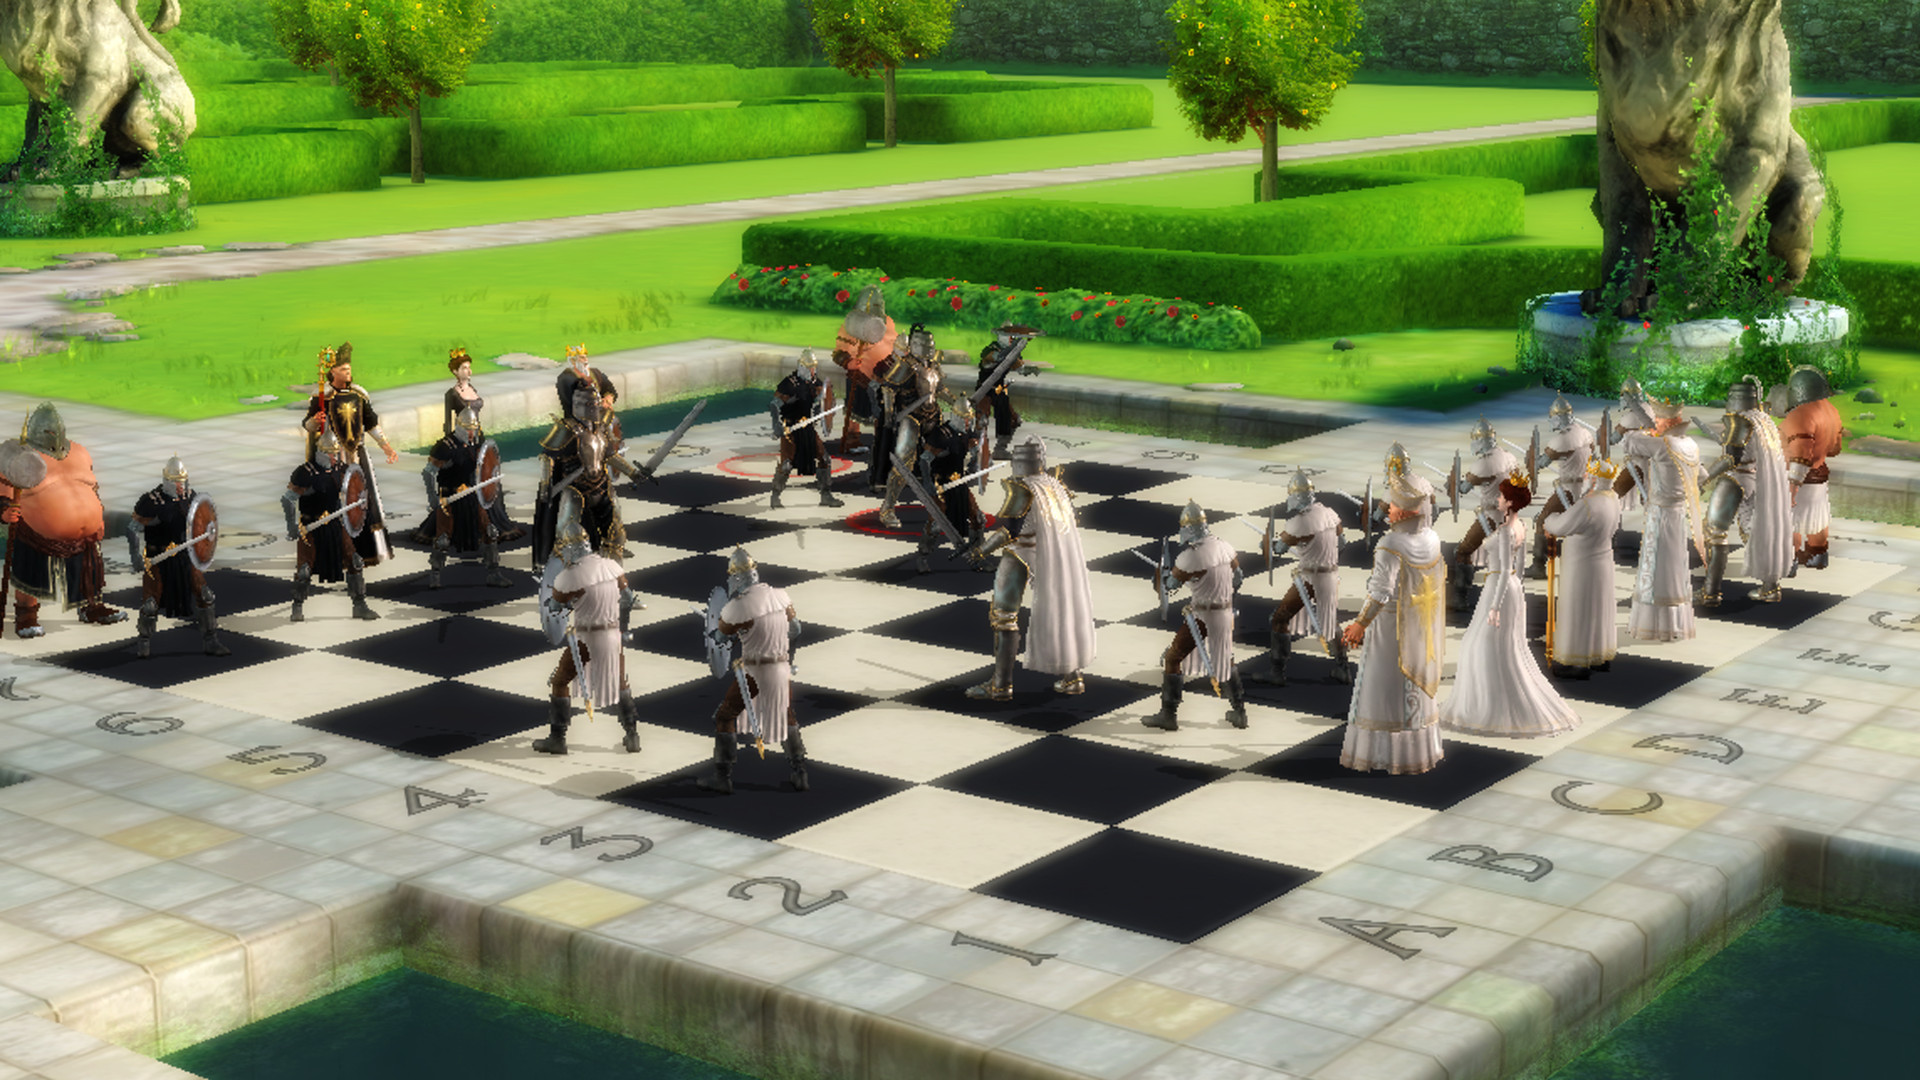 Game Fix Crack Battle Chess Game Of Kings B8227 All No